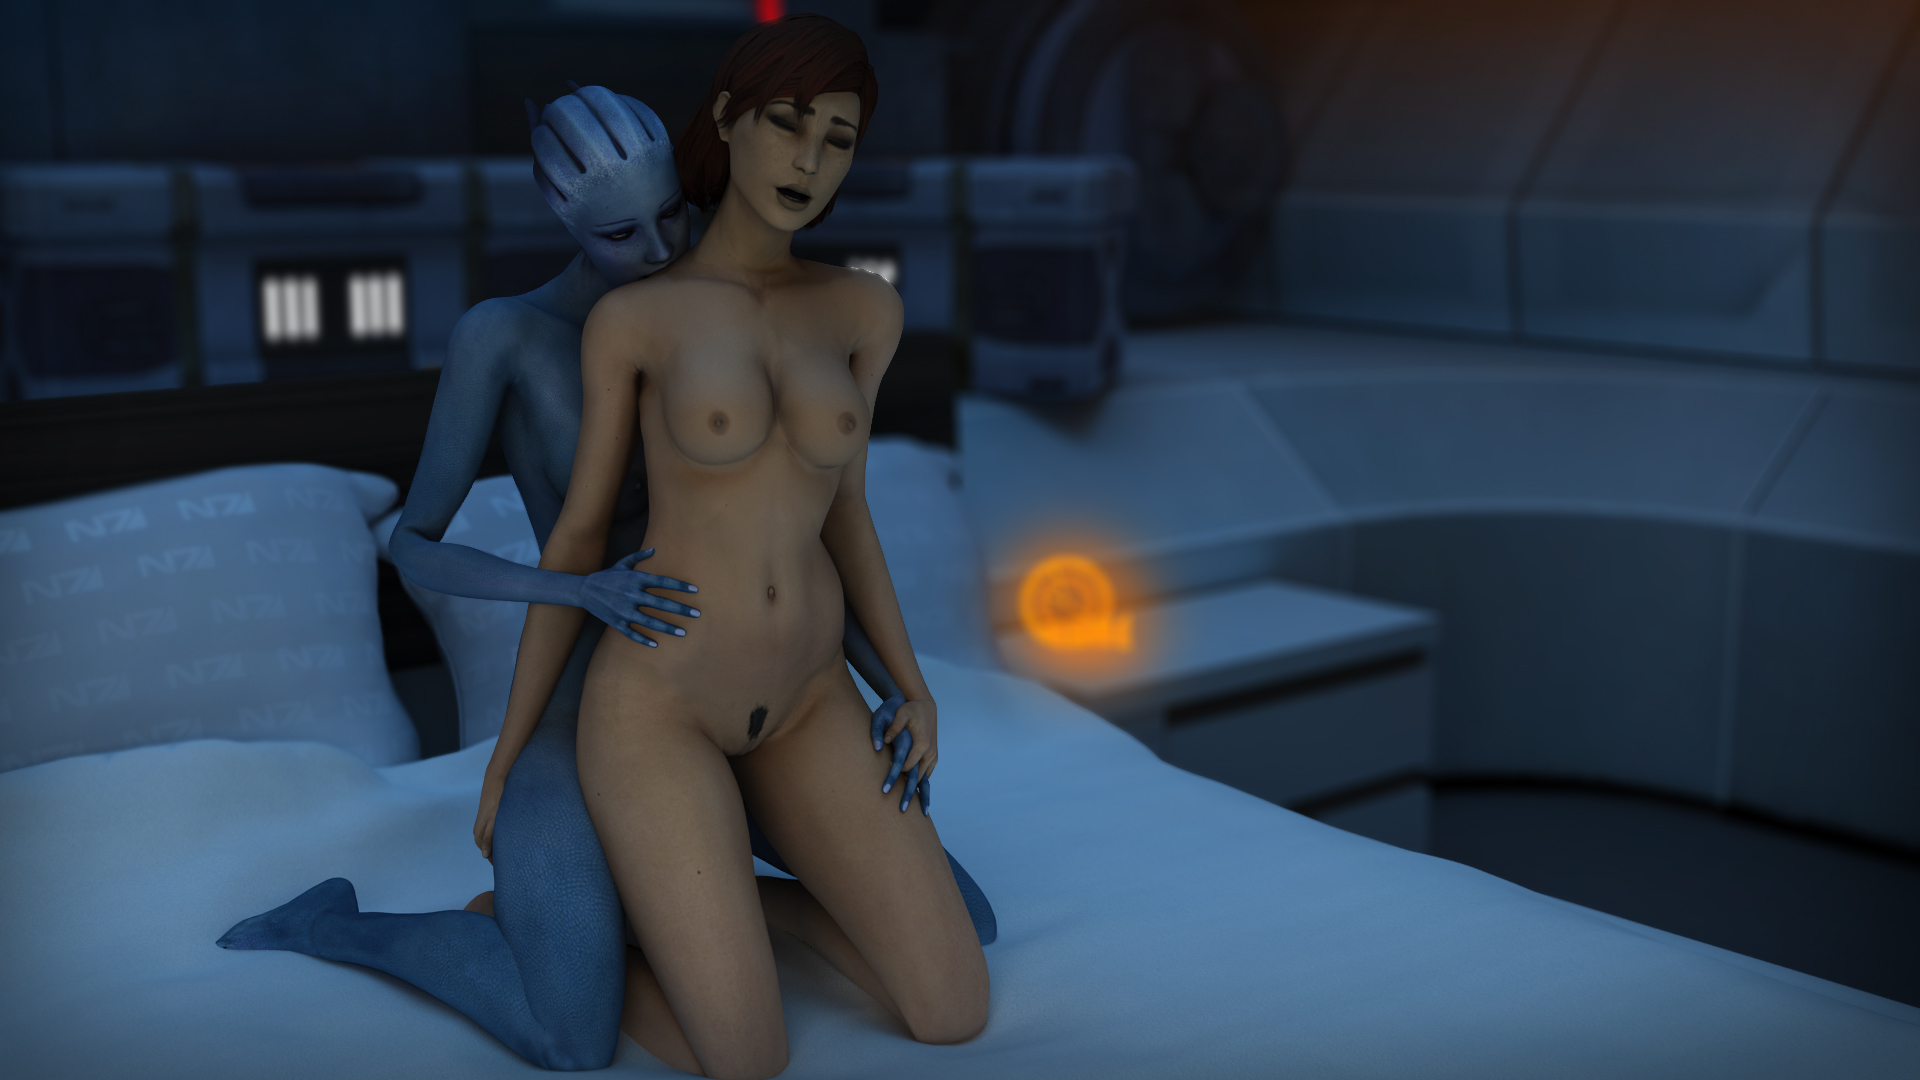 Liara nude patch erotic pic